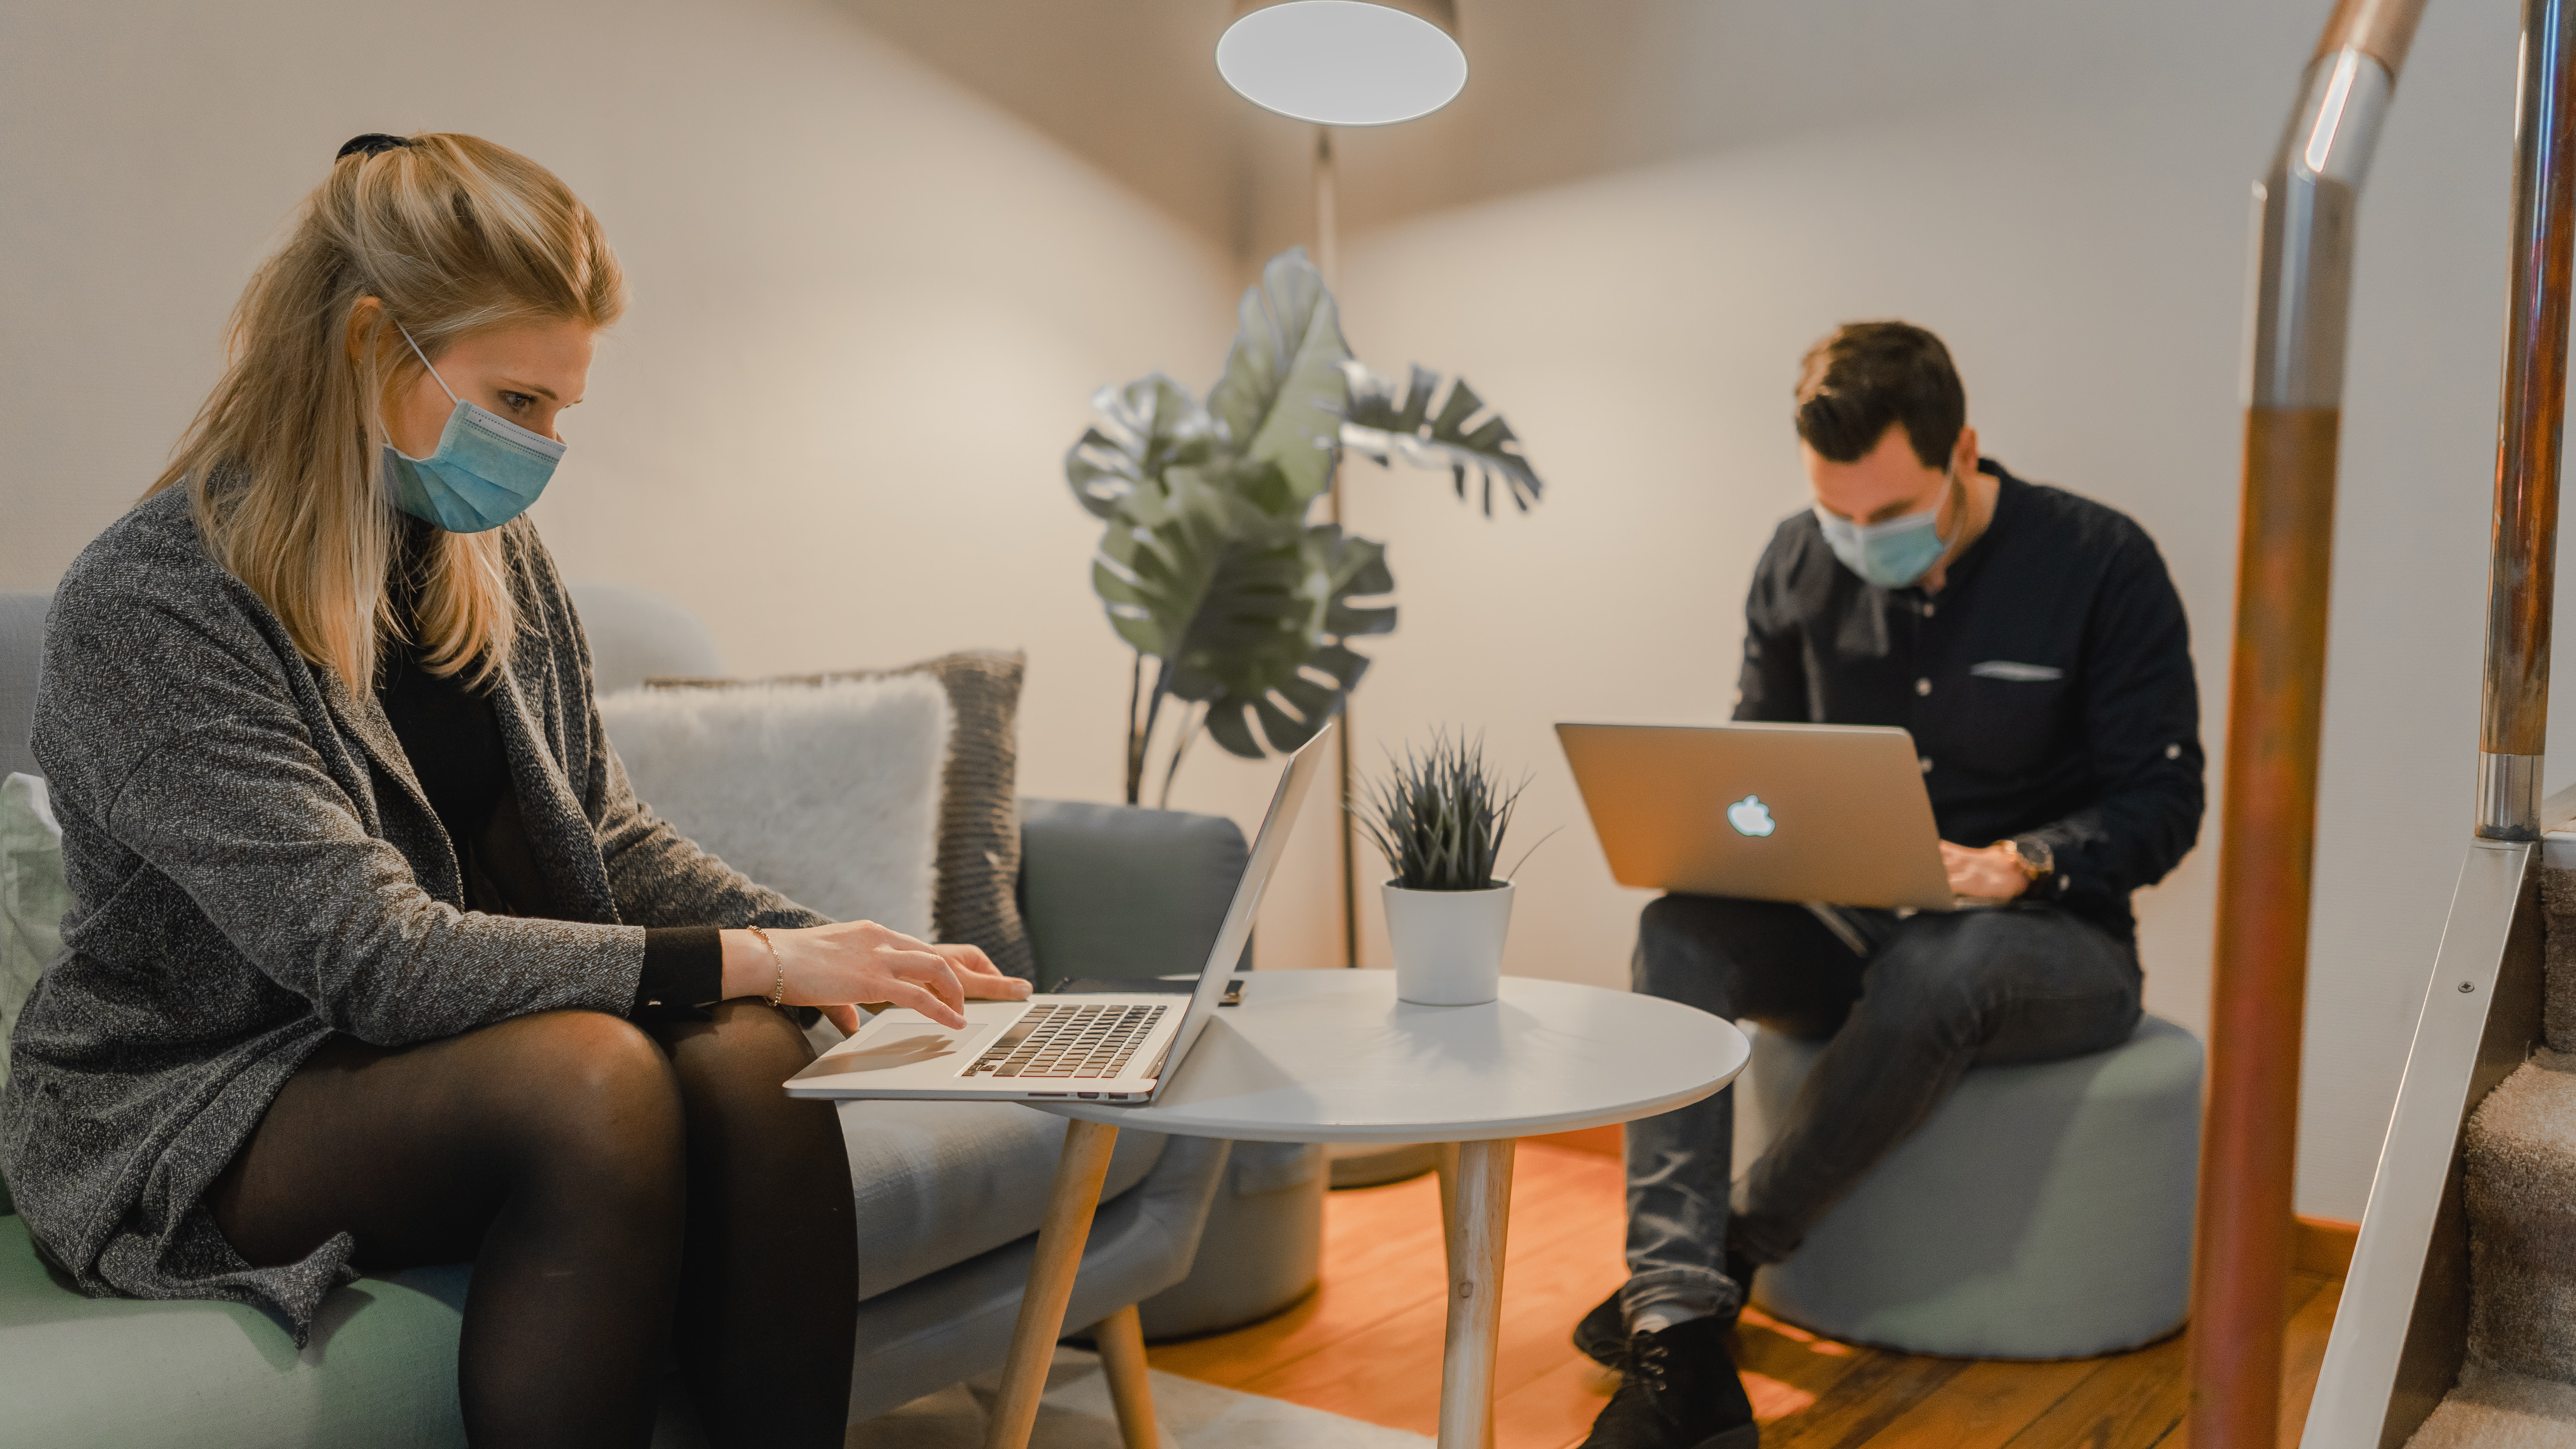 Managing Remote Sales Team in the Times of Global Crisis (COVID-19)